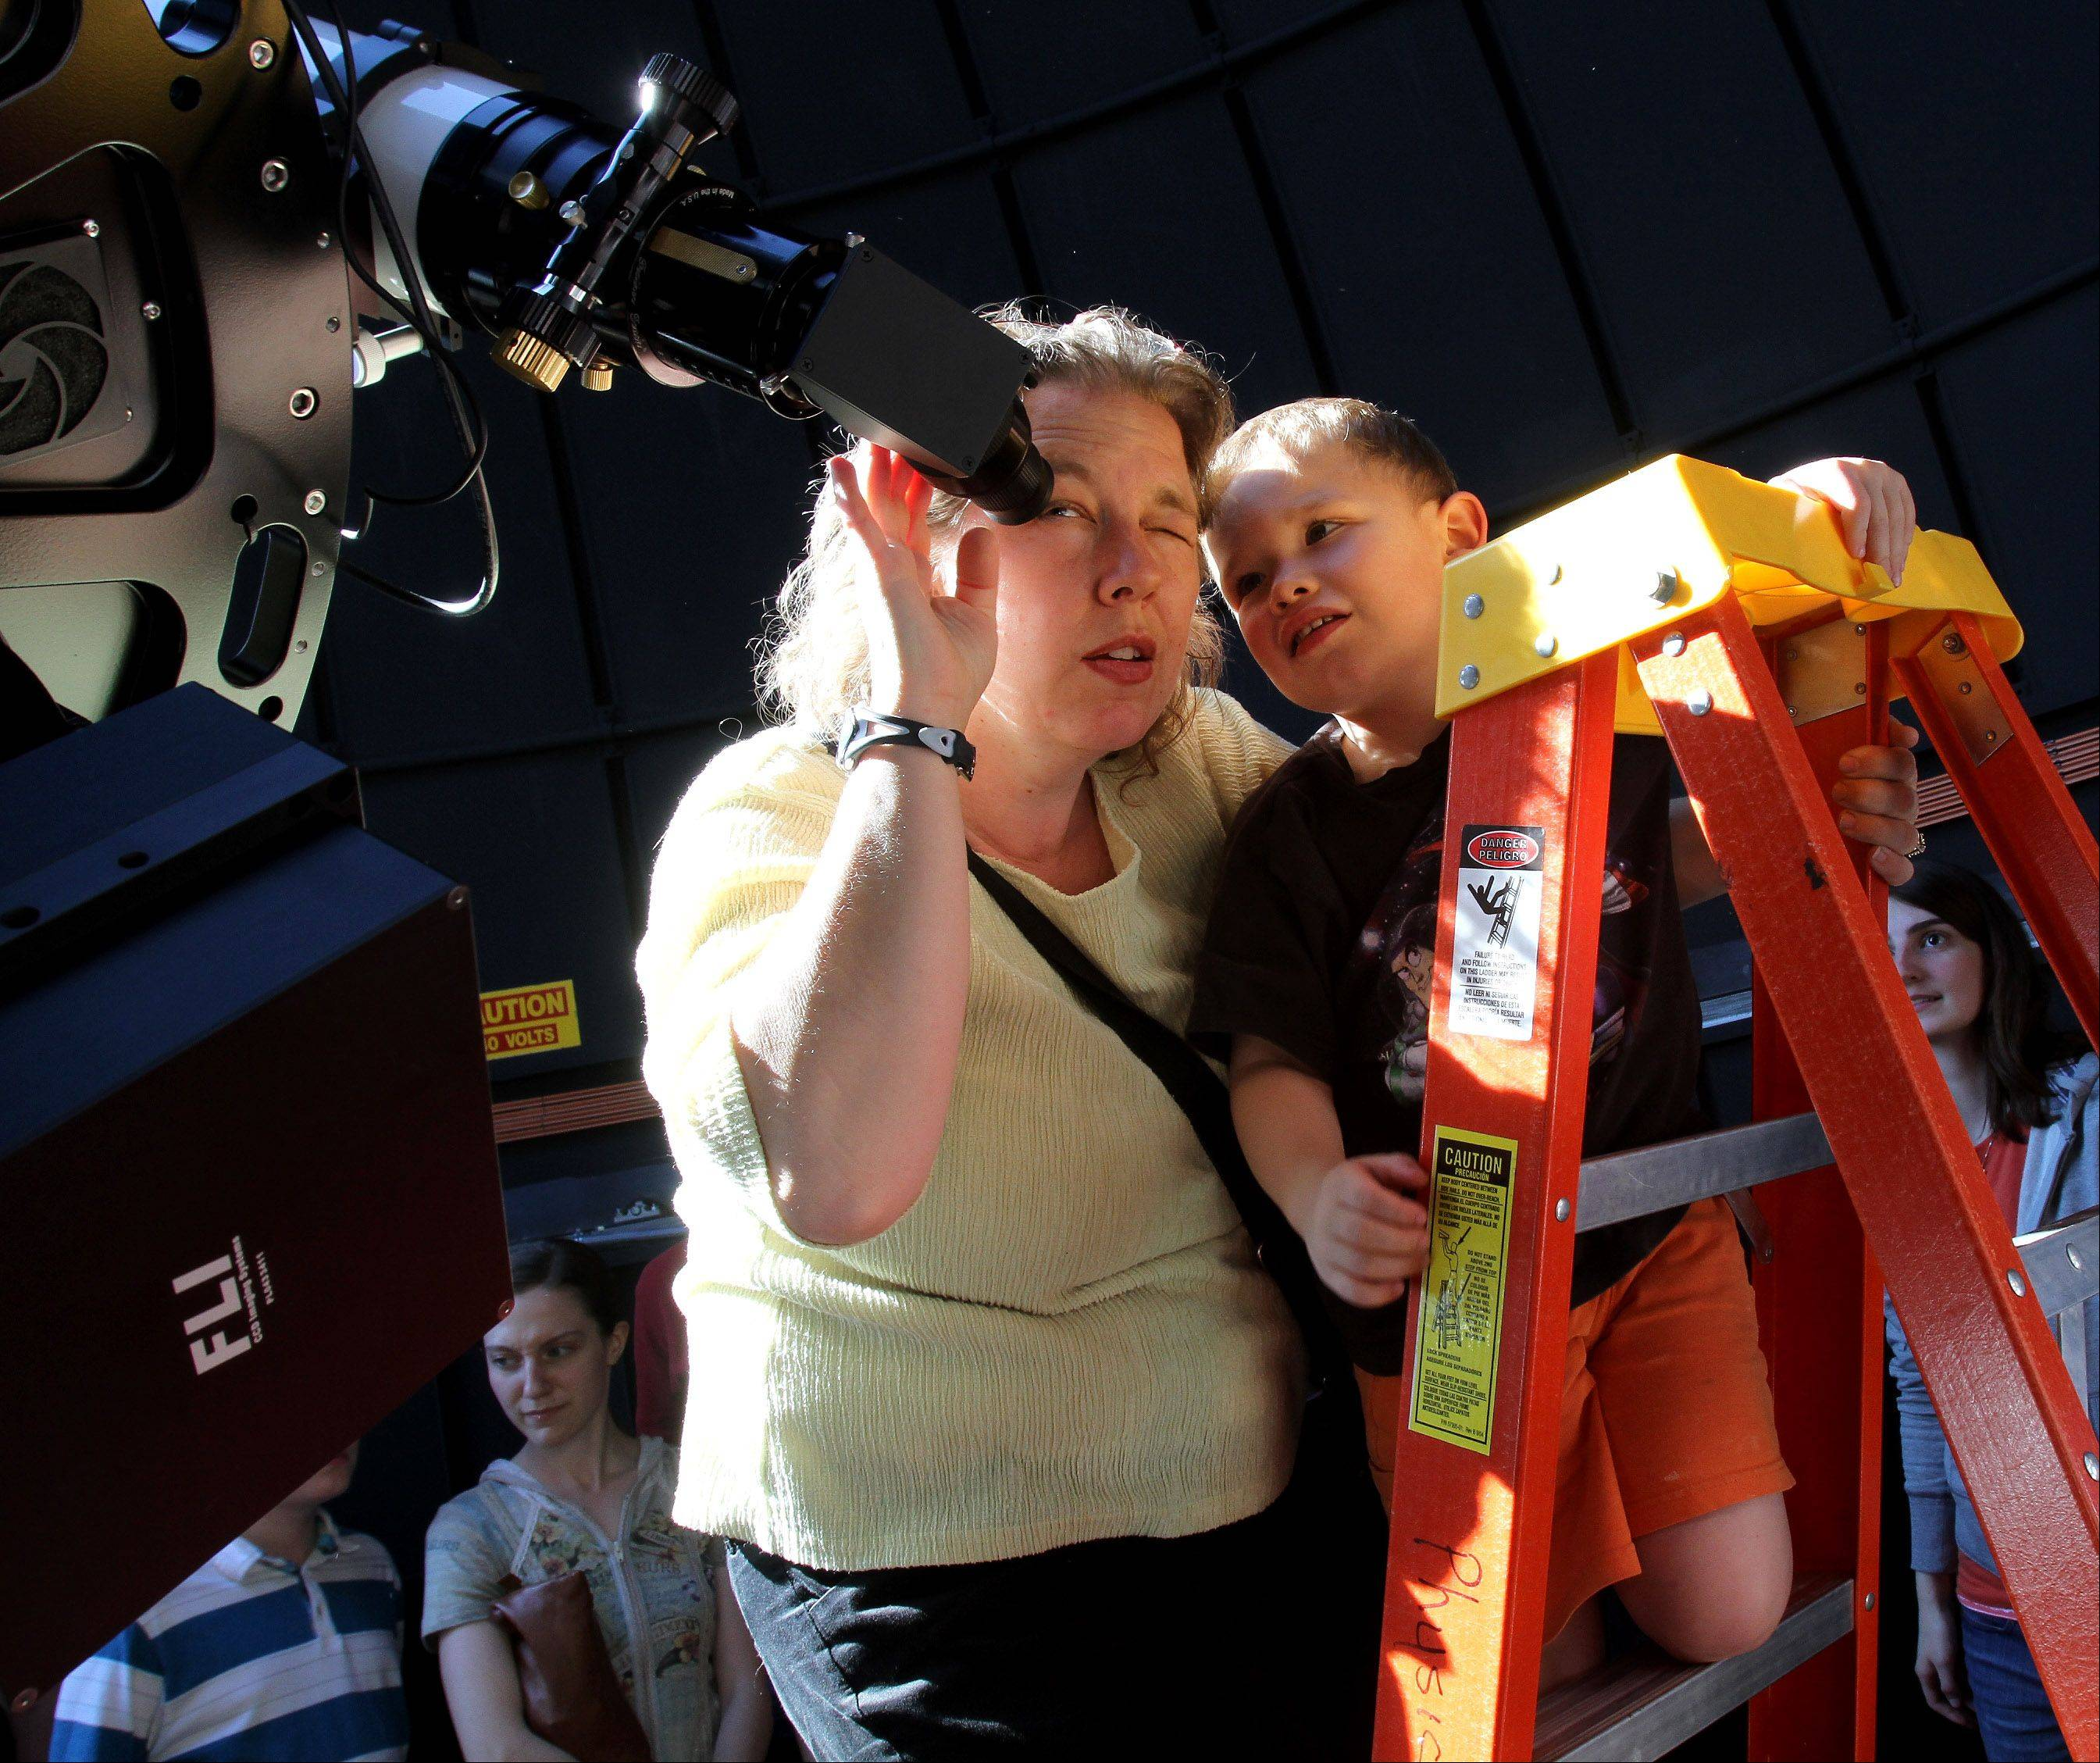 Alta Johnson of Wheaton takes a look through the main telescope with her son Ethan, 4, at the Wheaton College Astronomical Observatory, which opened Tuesday evening for free viewings of the Transit of Venus.